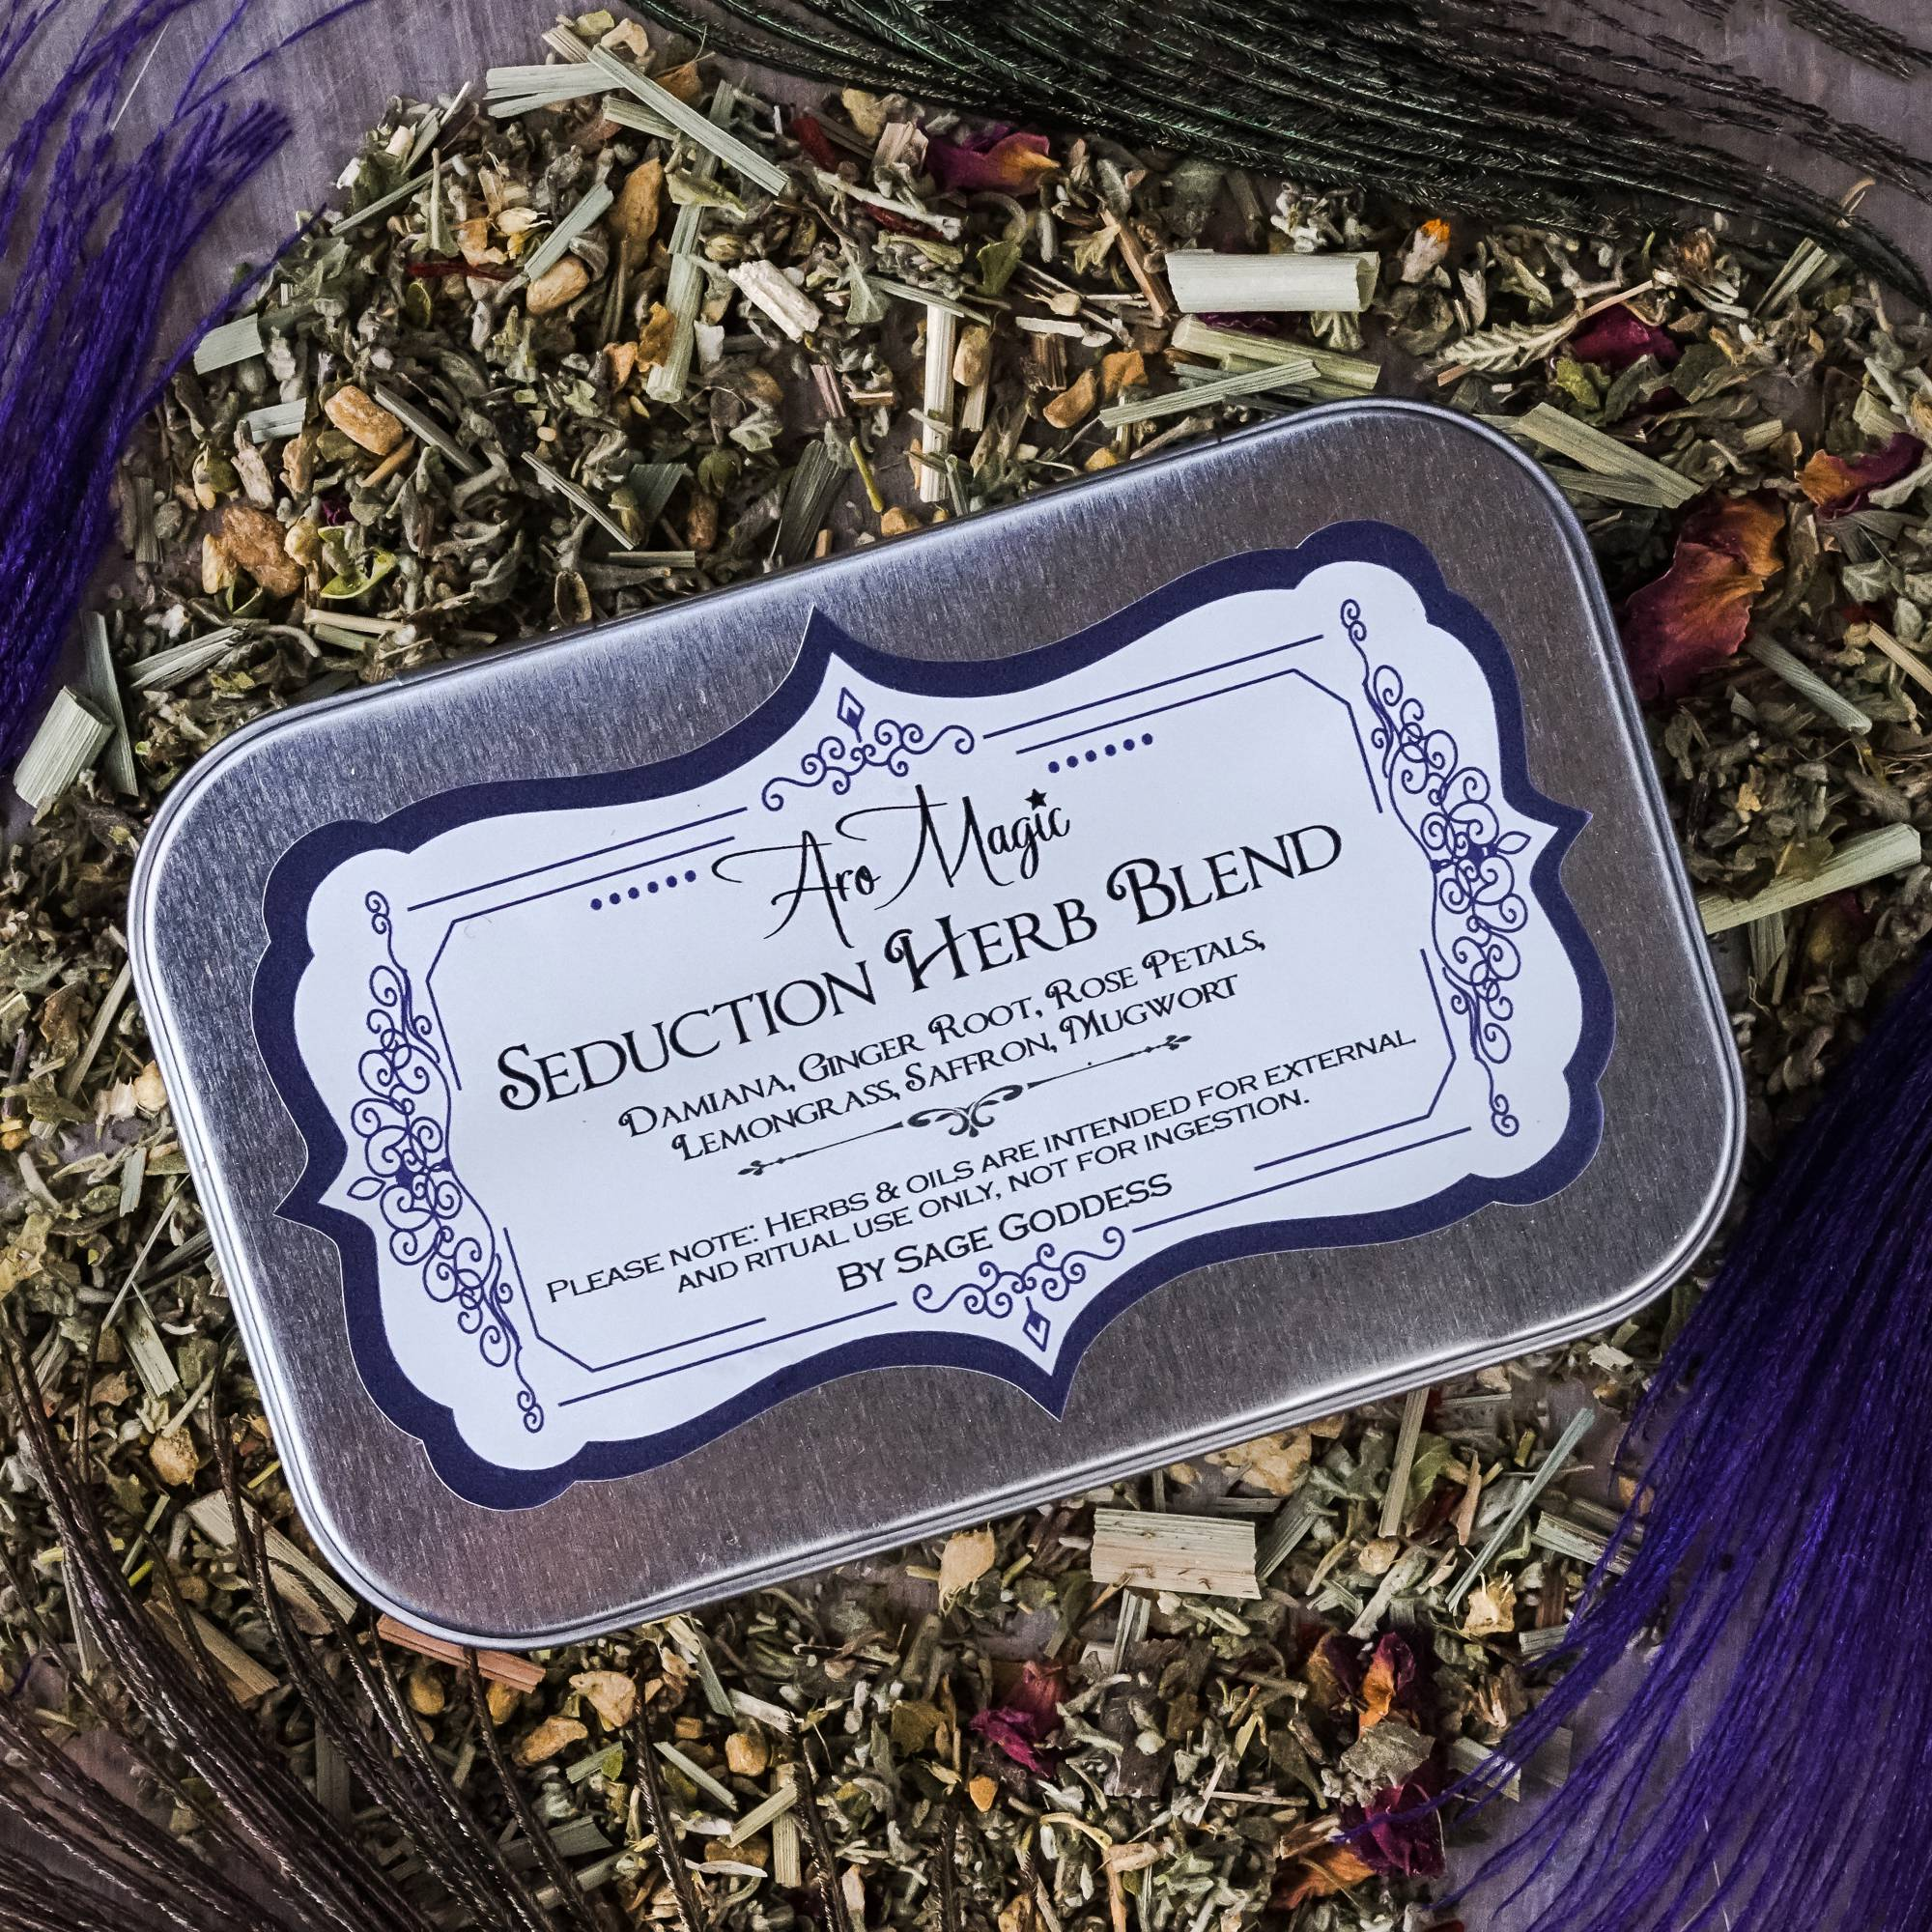 Seduction Herb Blend